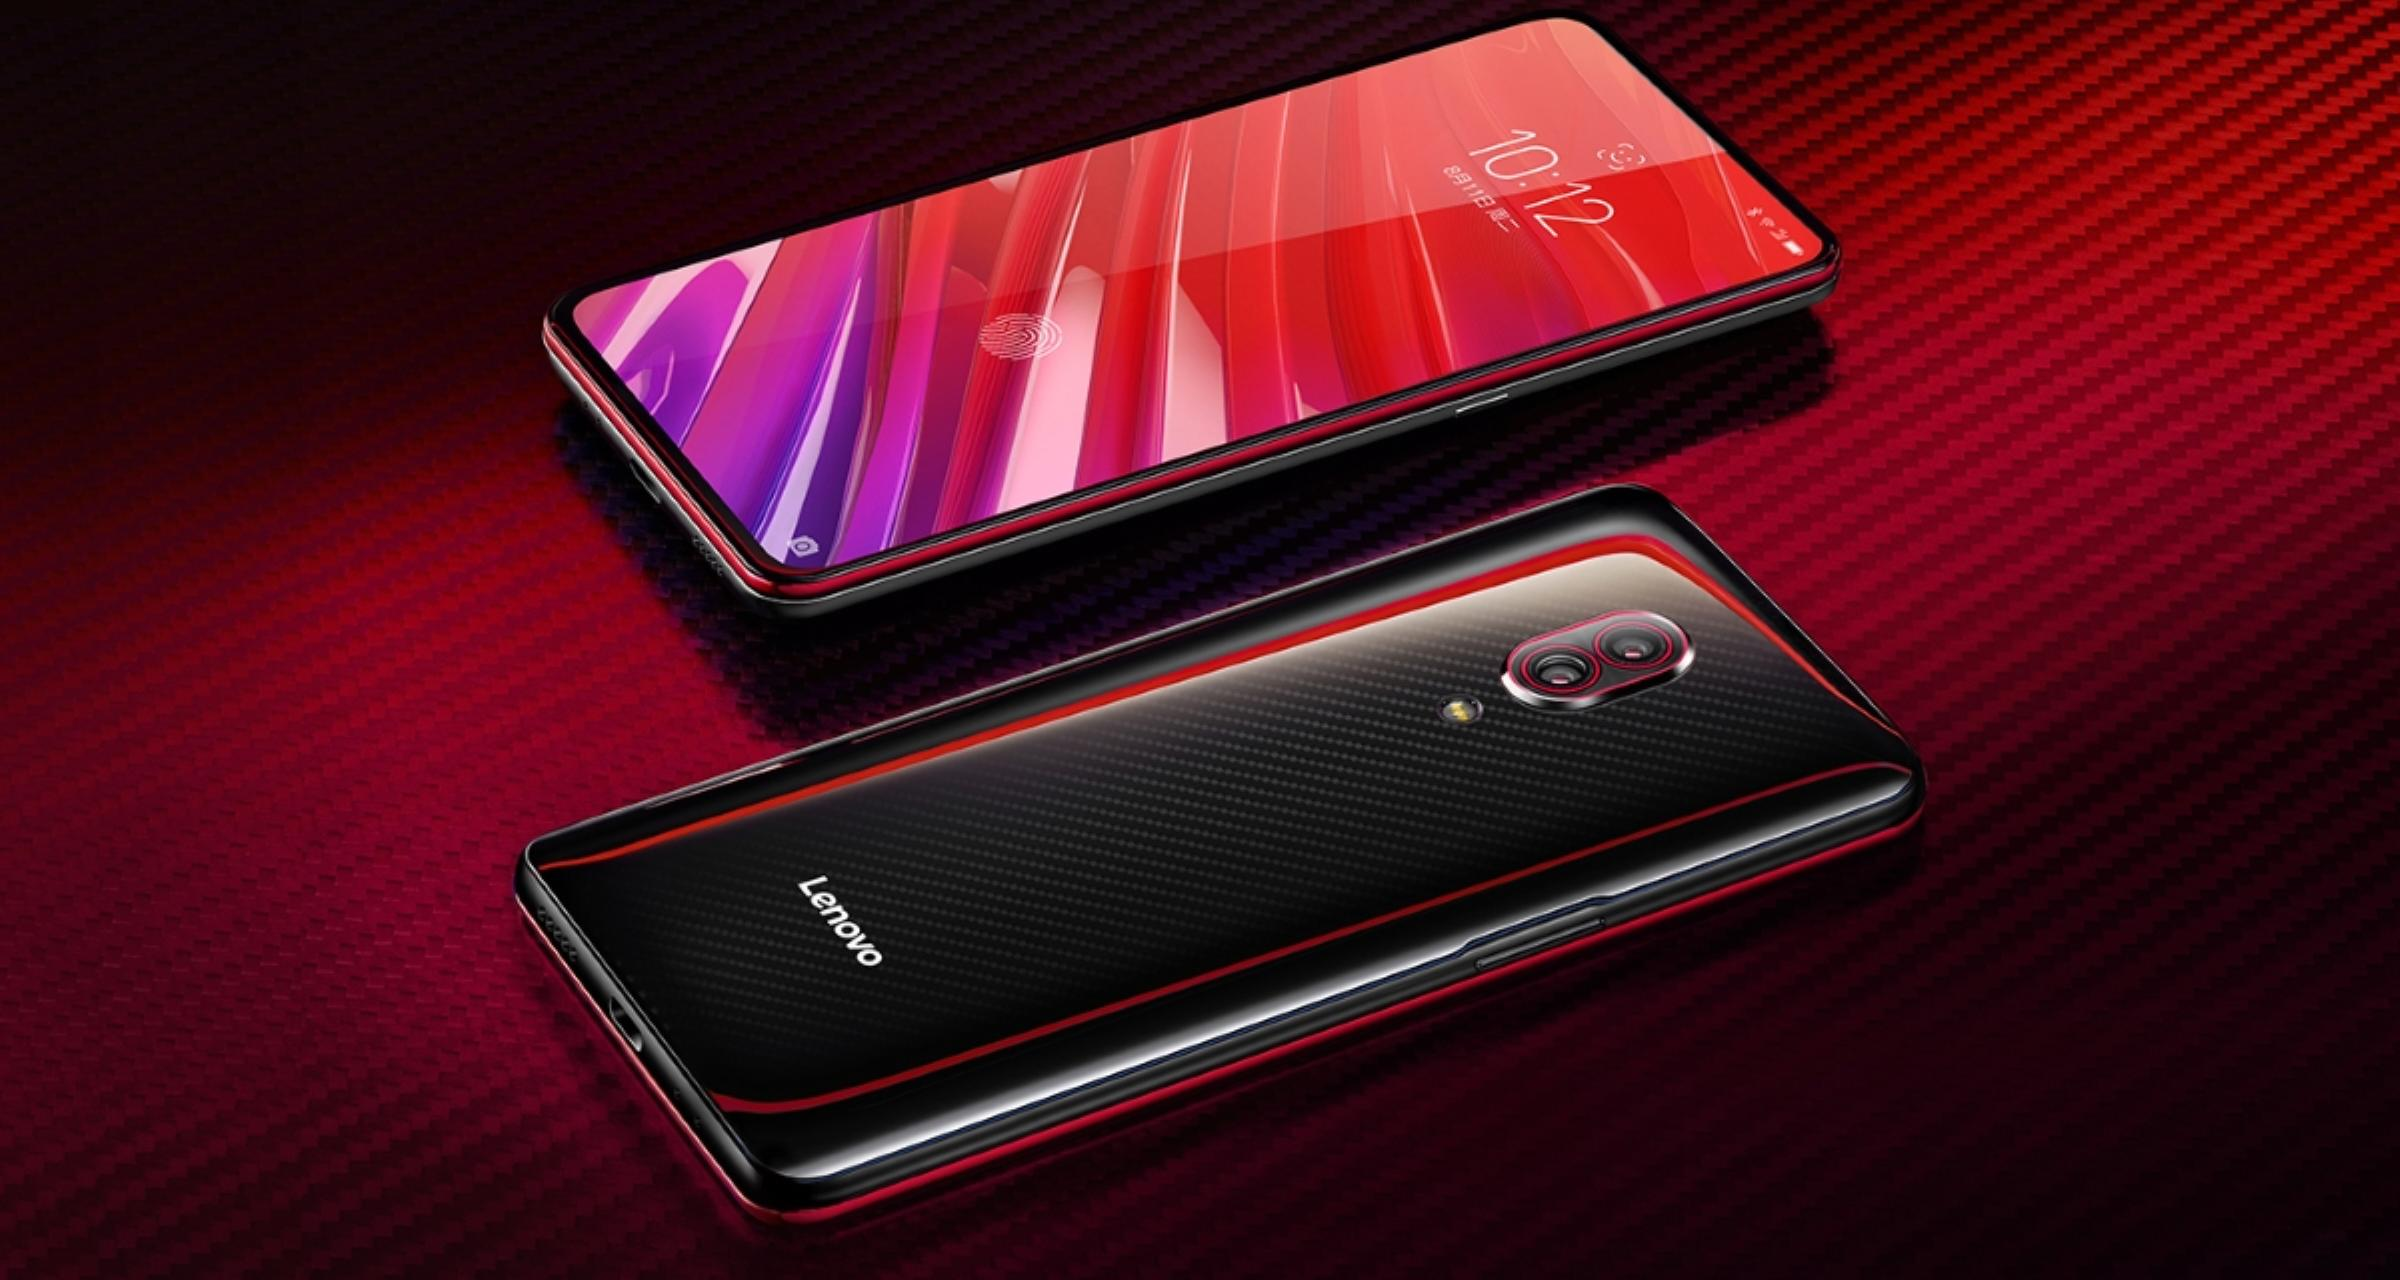 New flagship smartphone Lenovo Z6 Pro will present on March 27 in China